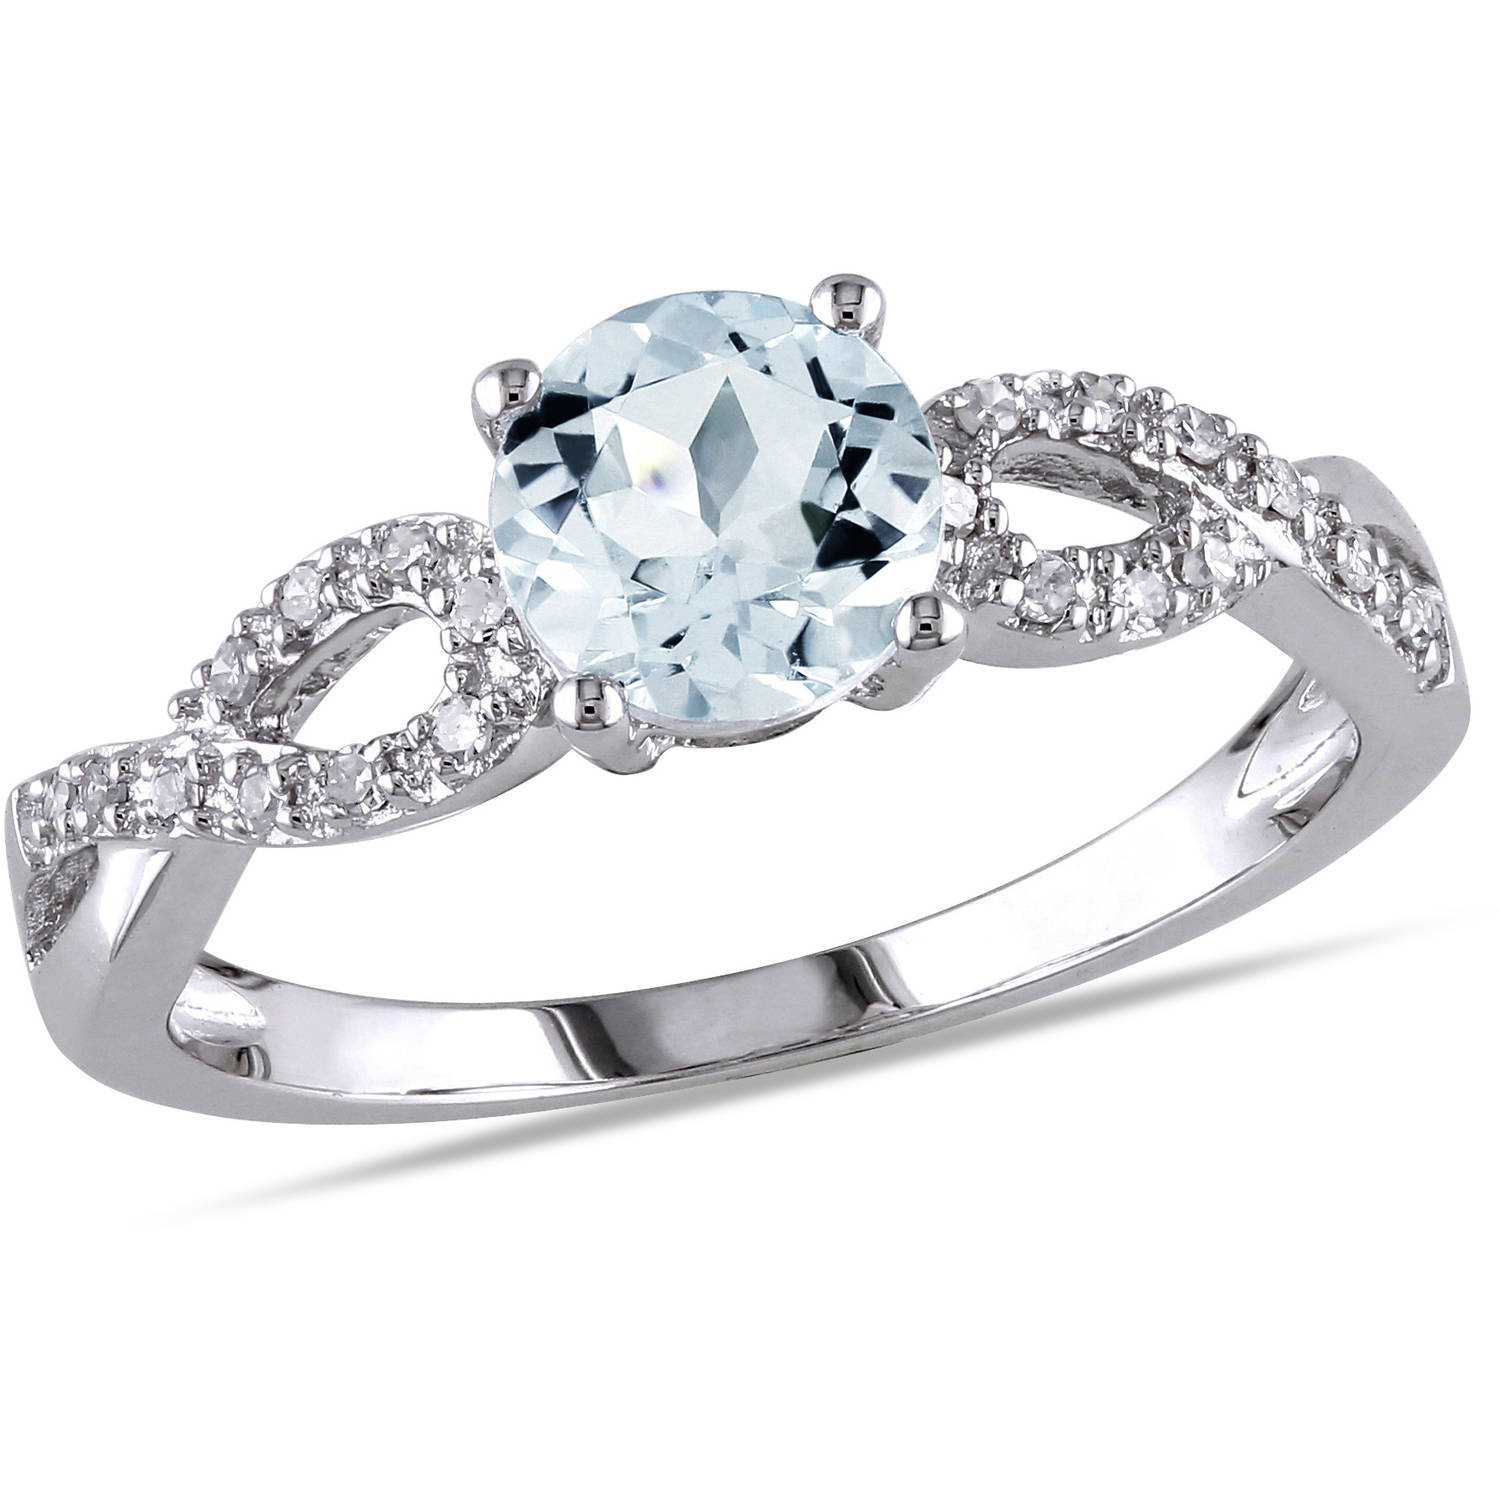 Tangelo 3/4 Carat T.G.W. Aquamarine and Diamond-Accent 10kt Gold Infinity Engagement Ring